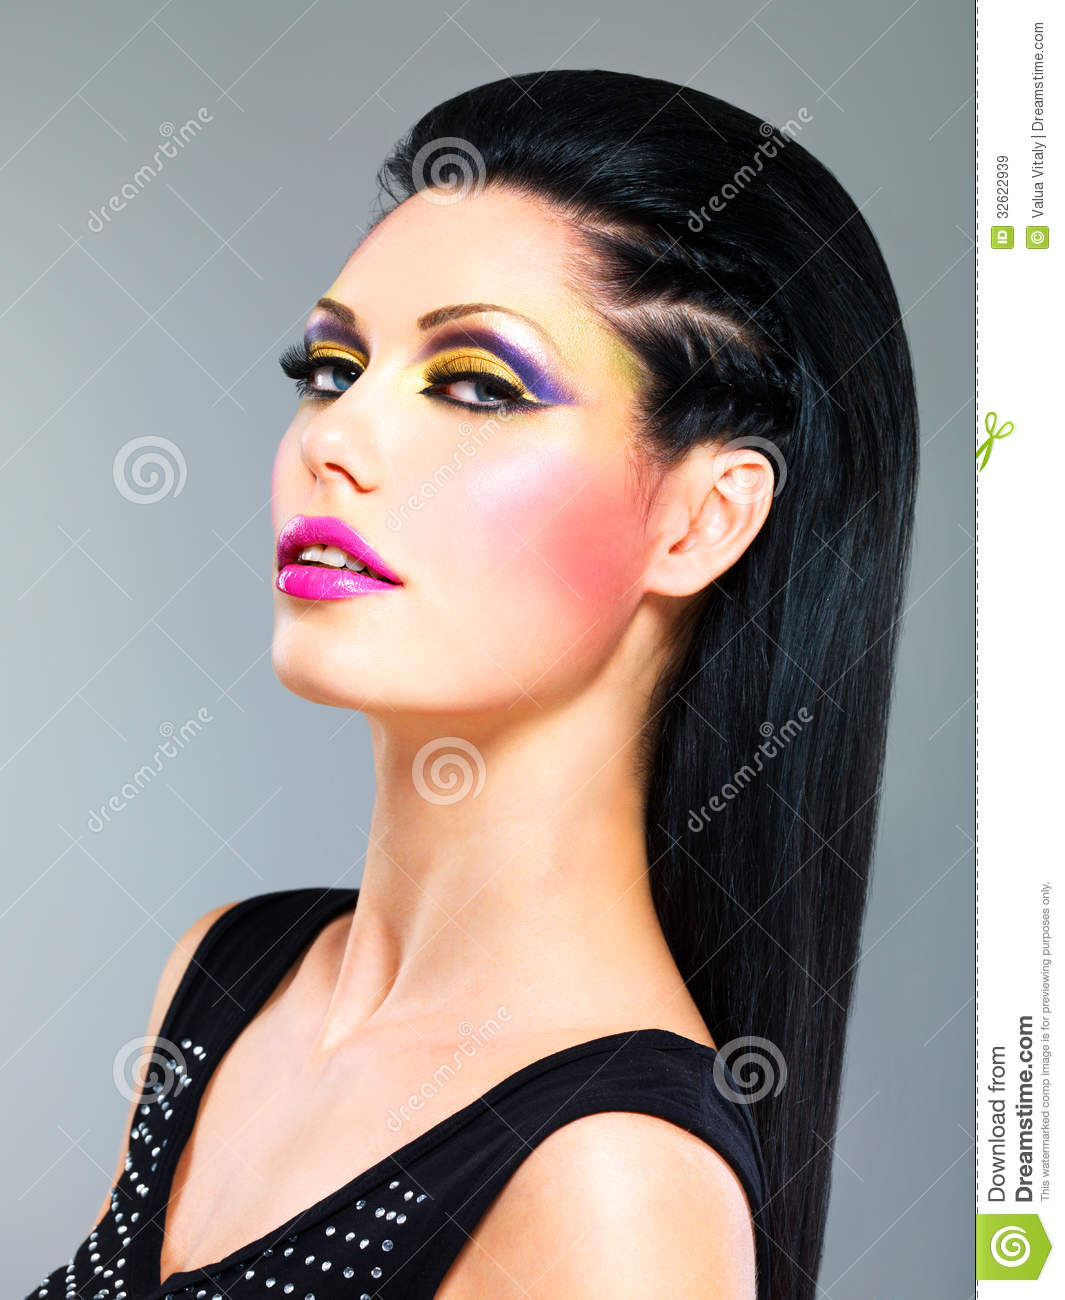 Beauty Woman With Fashion Makeup On Face Stock Image ...